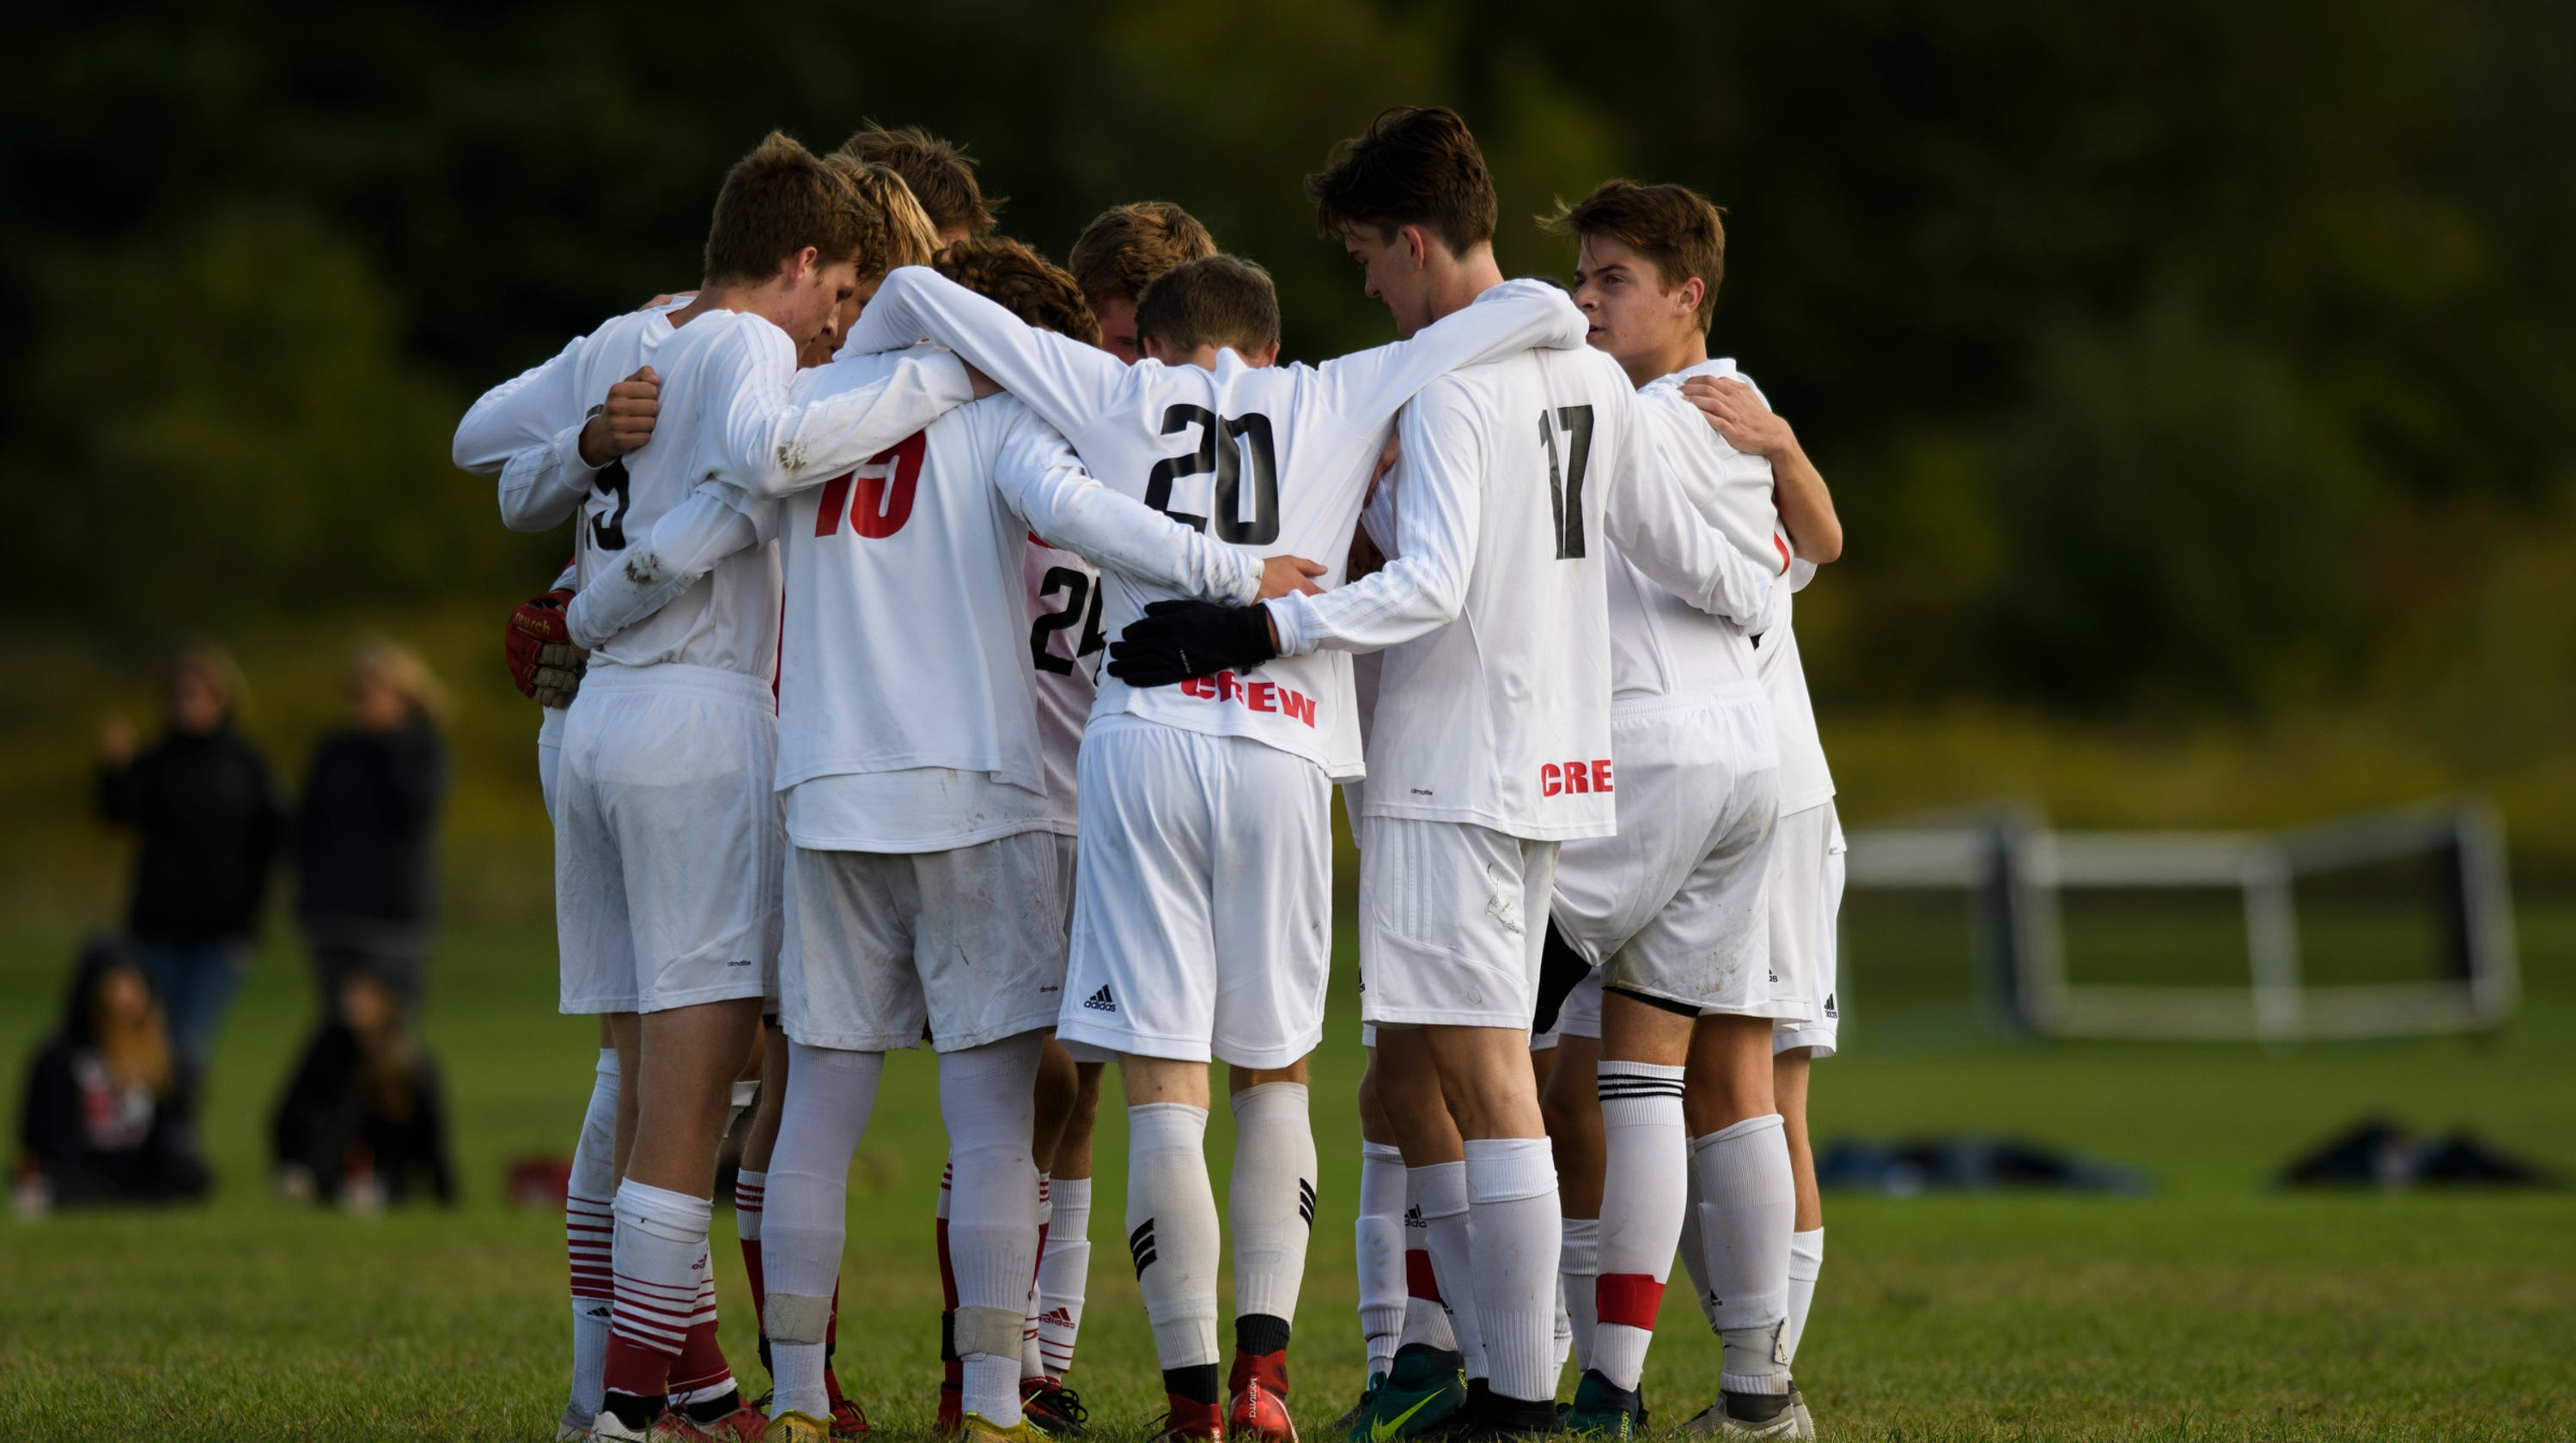 2018 Vermont high school boys soccer playoff primer and